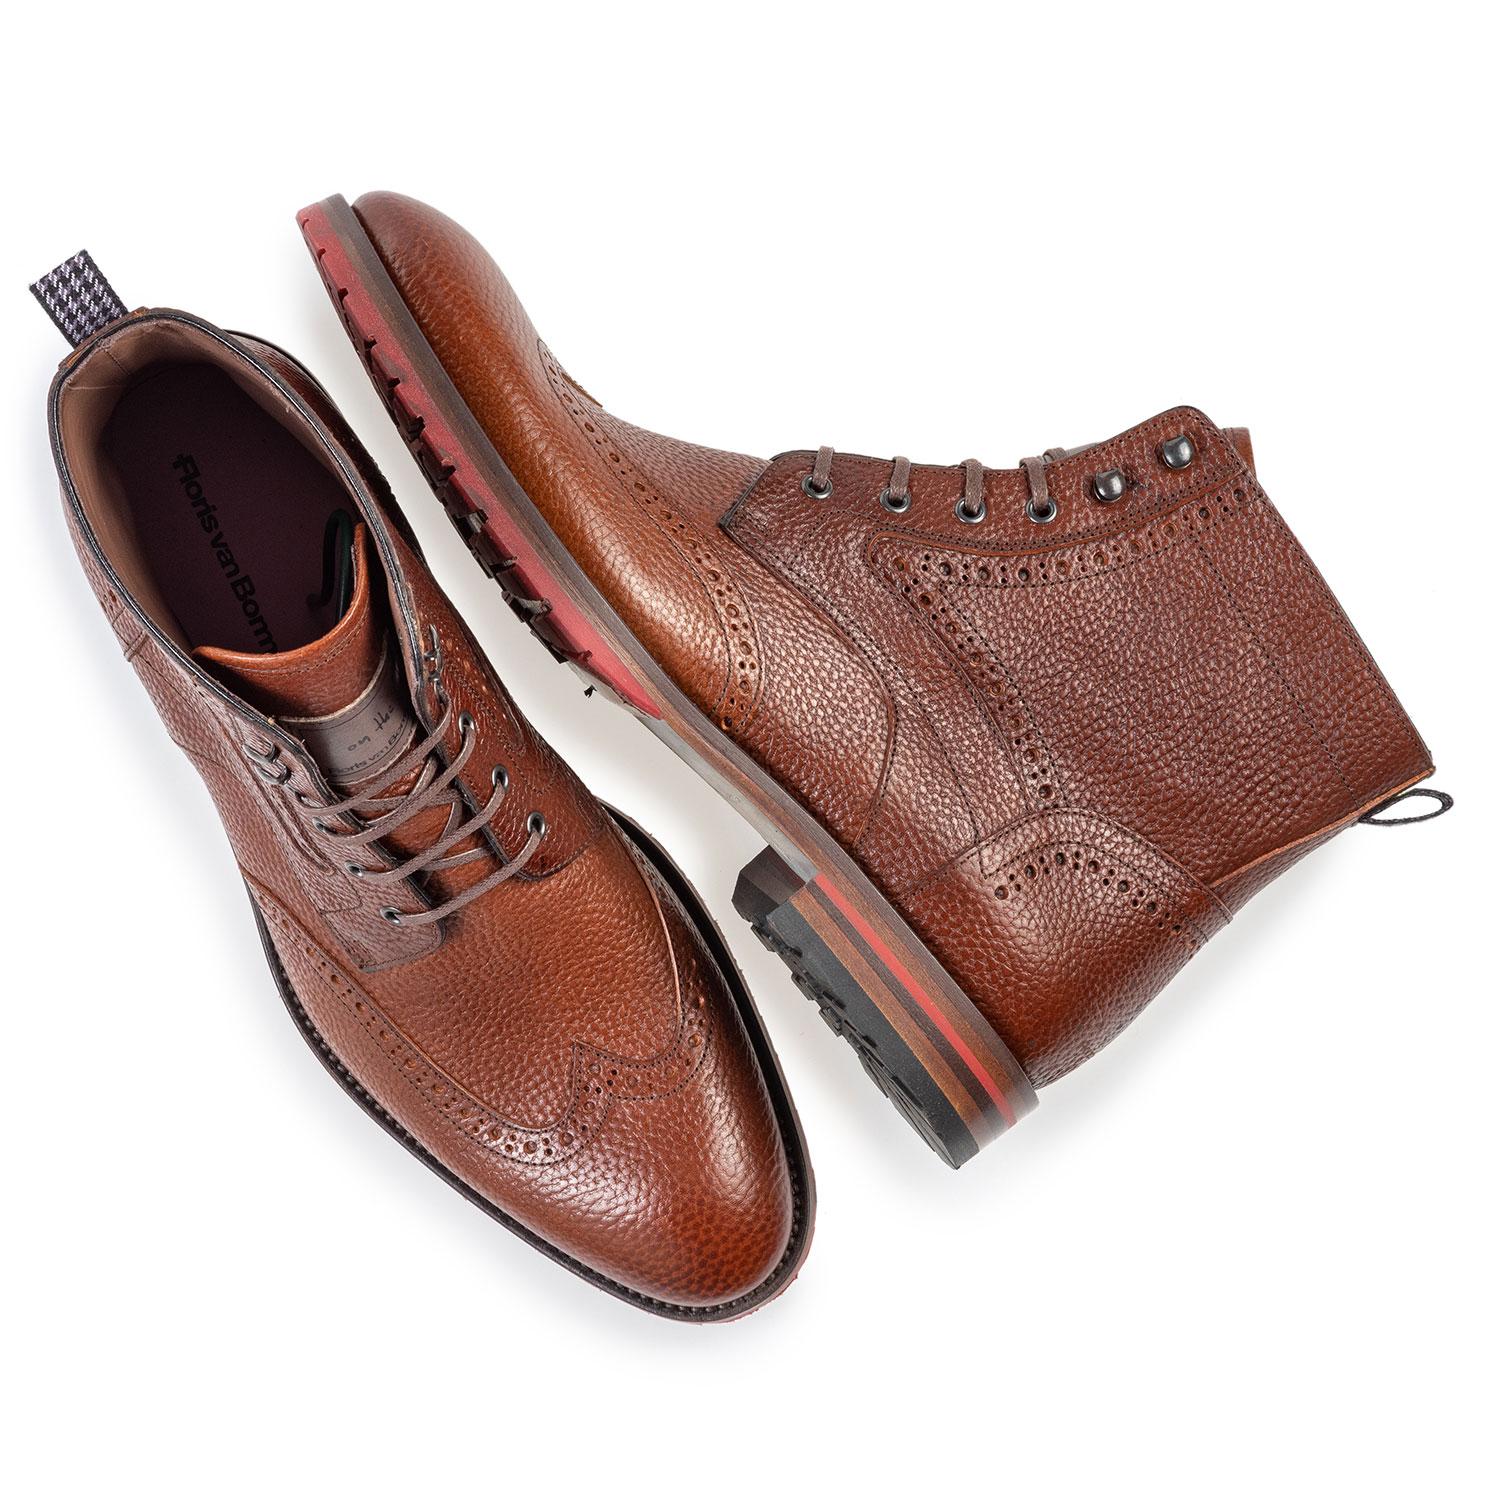 10295/22 - Leather brogue lace boot cognac